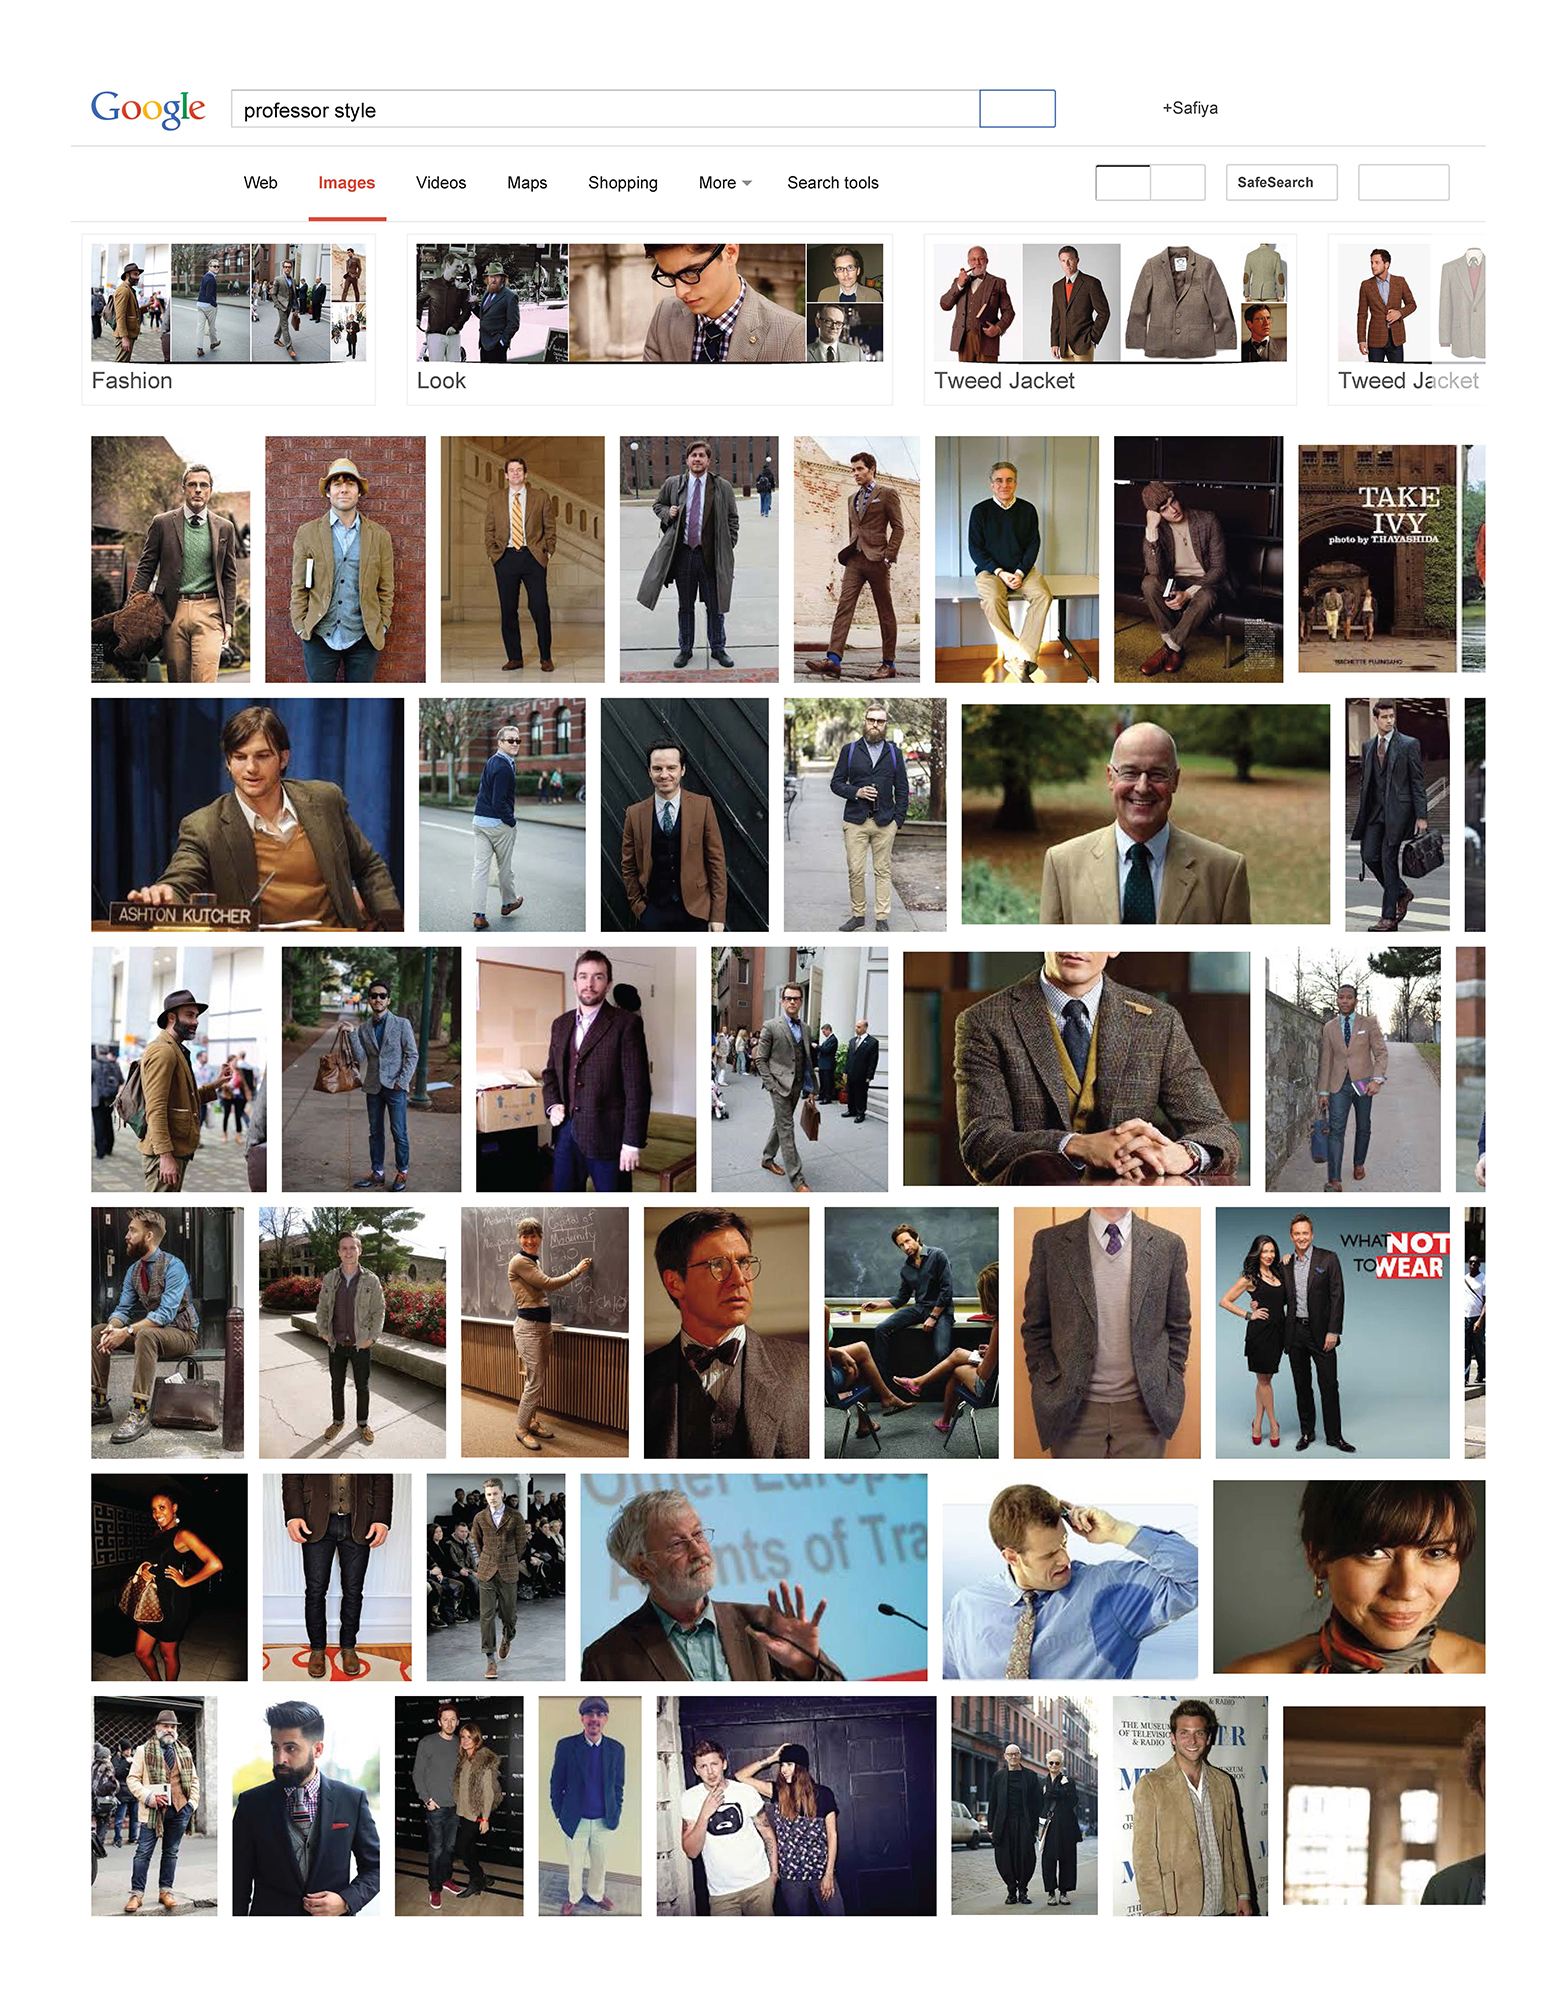 "Google Images results when searching the phrase ""professor style"" while logged in as Safiya Noble, September 15, 2015."